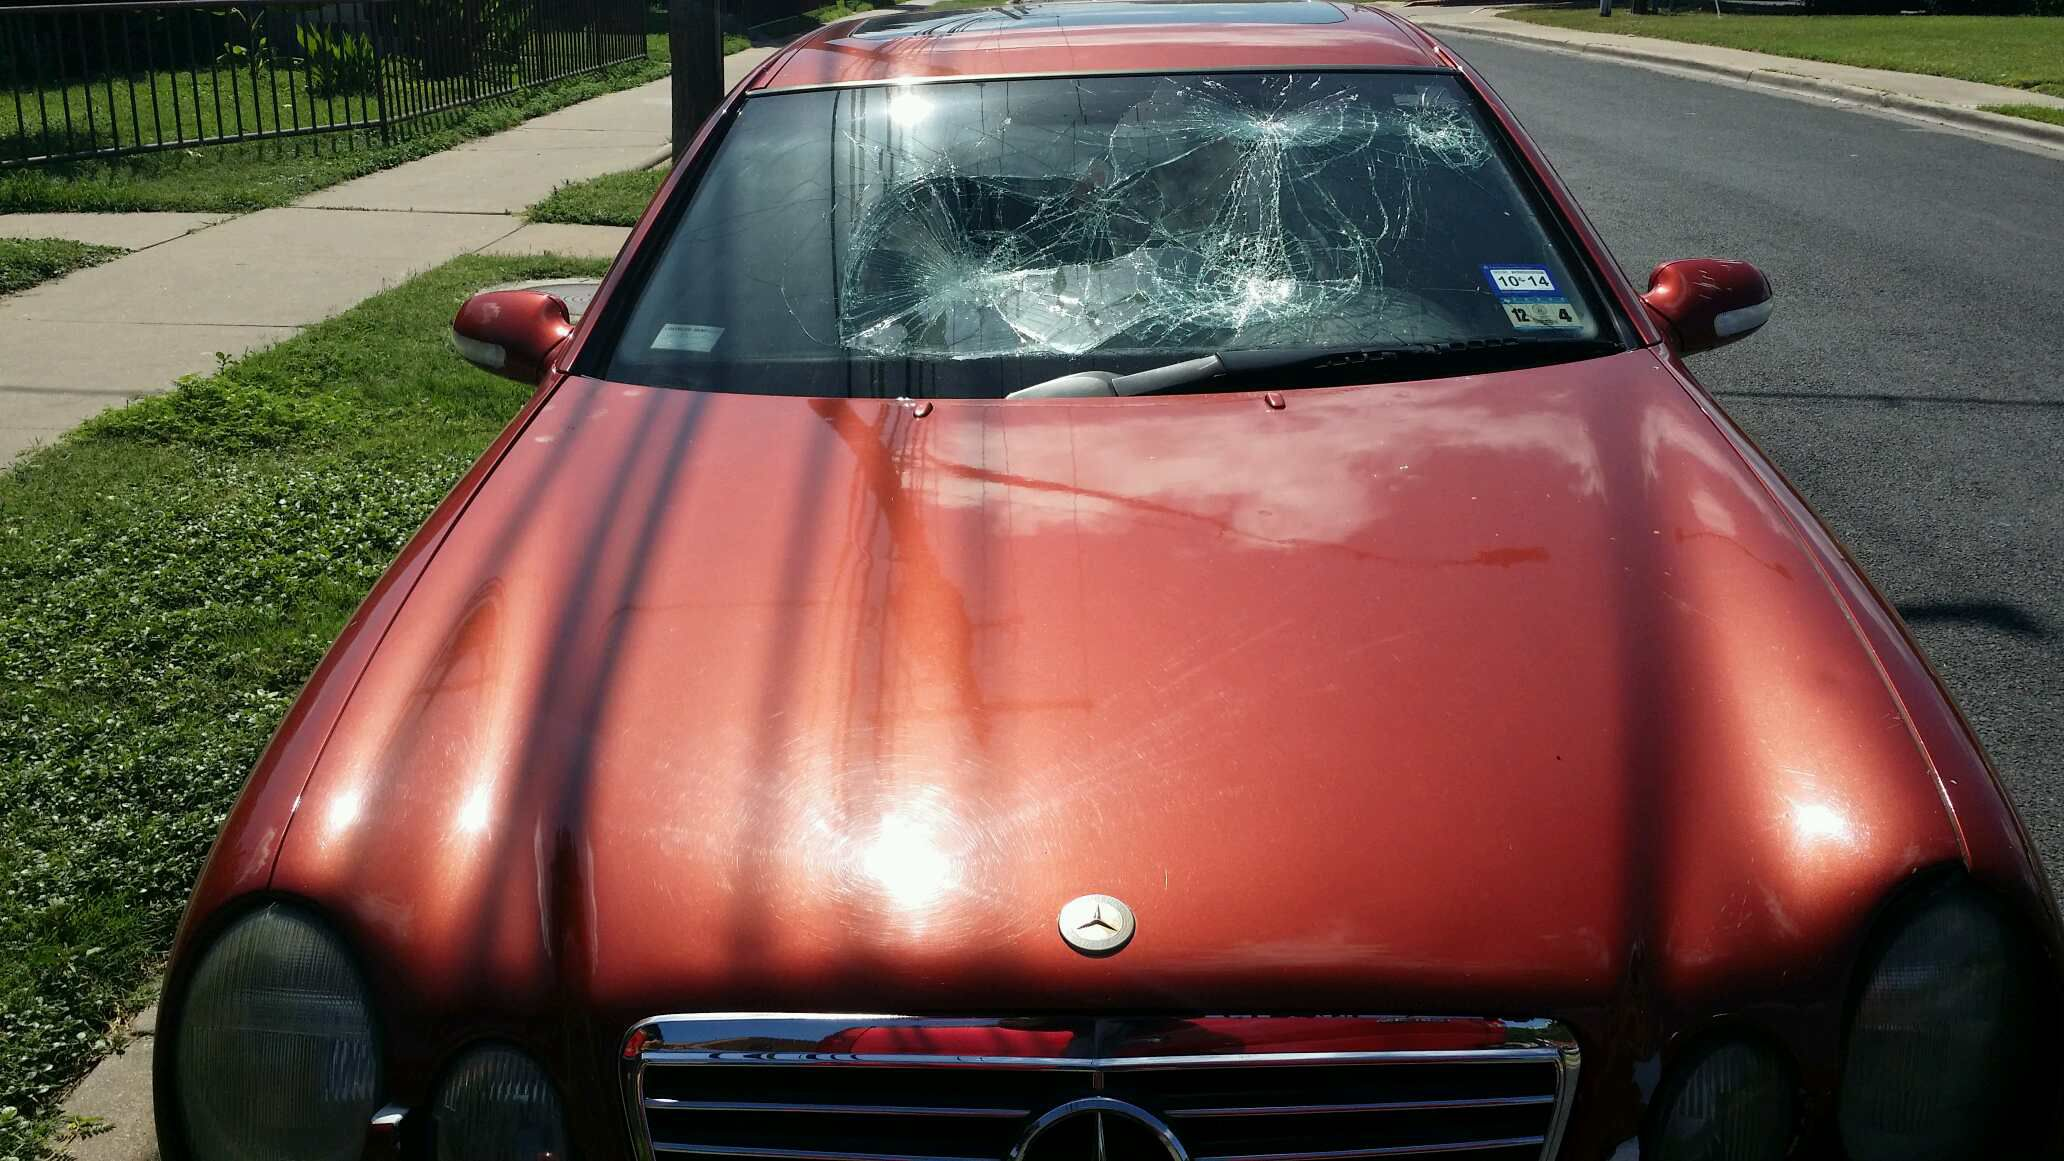 Clk320 2 door coupe windshield replacement prices local for Mercedes benz glass replacement